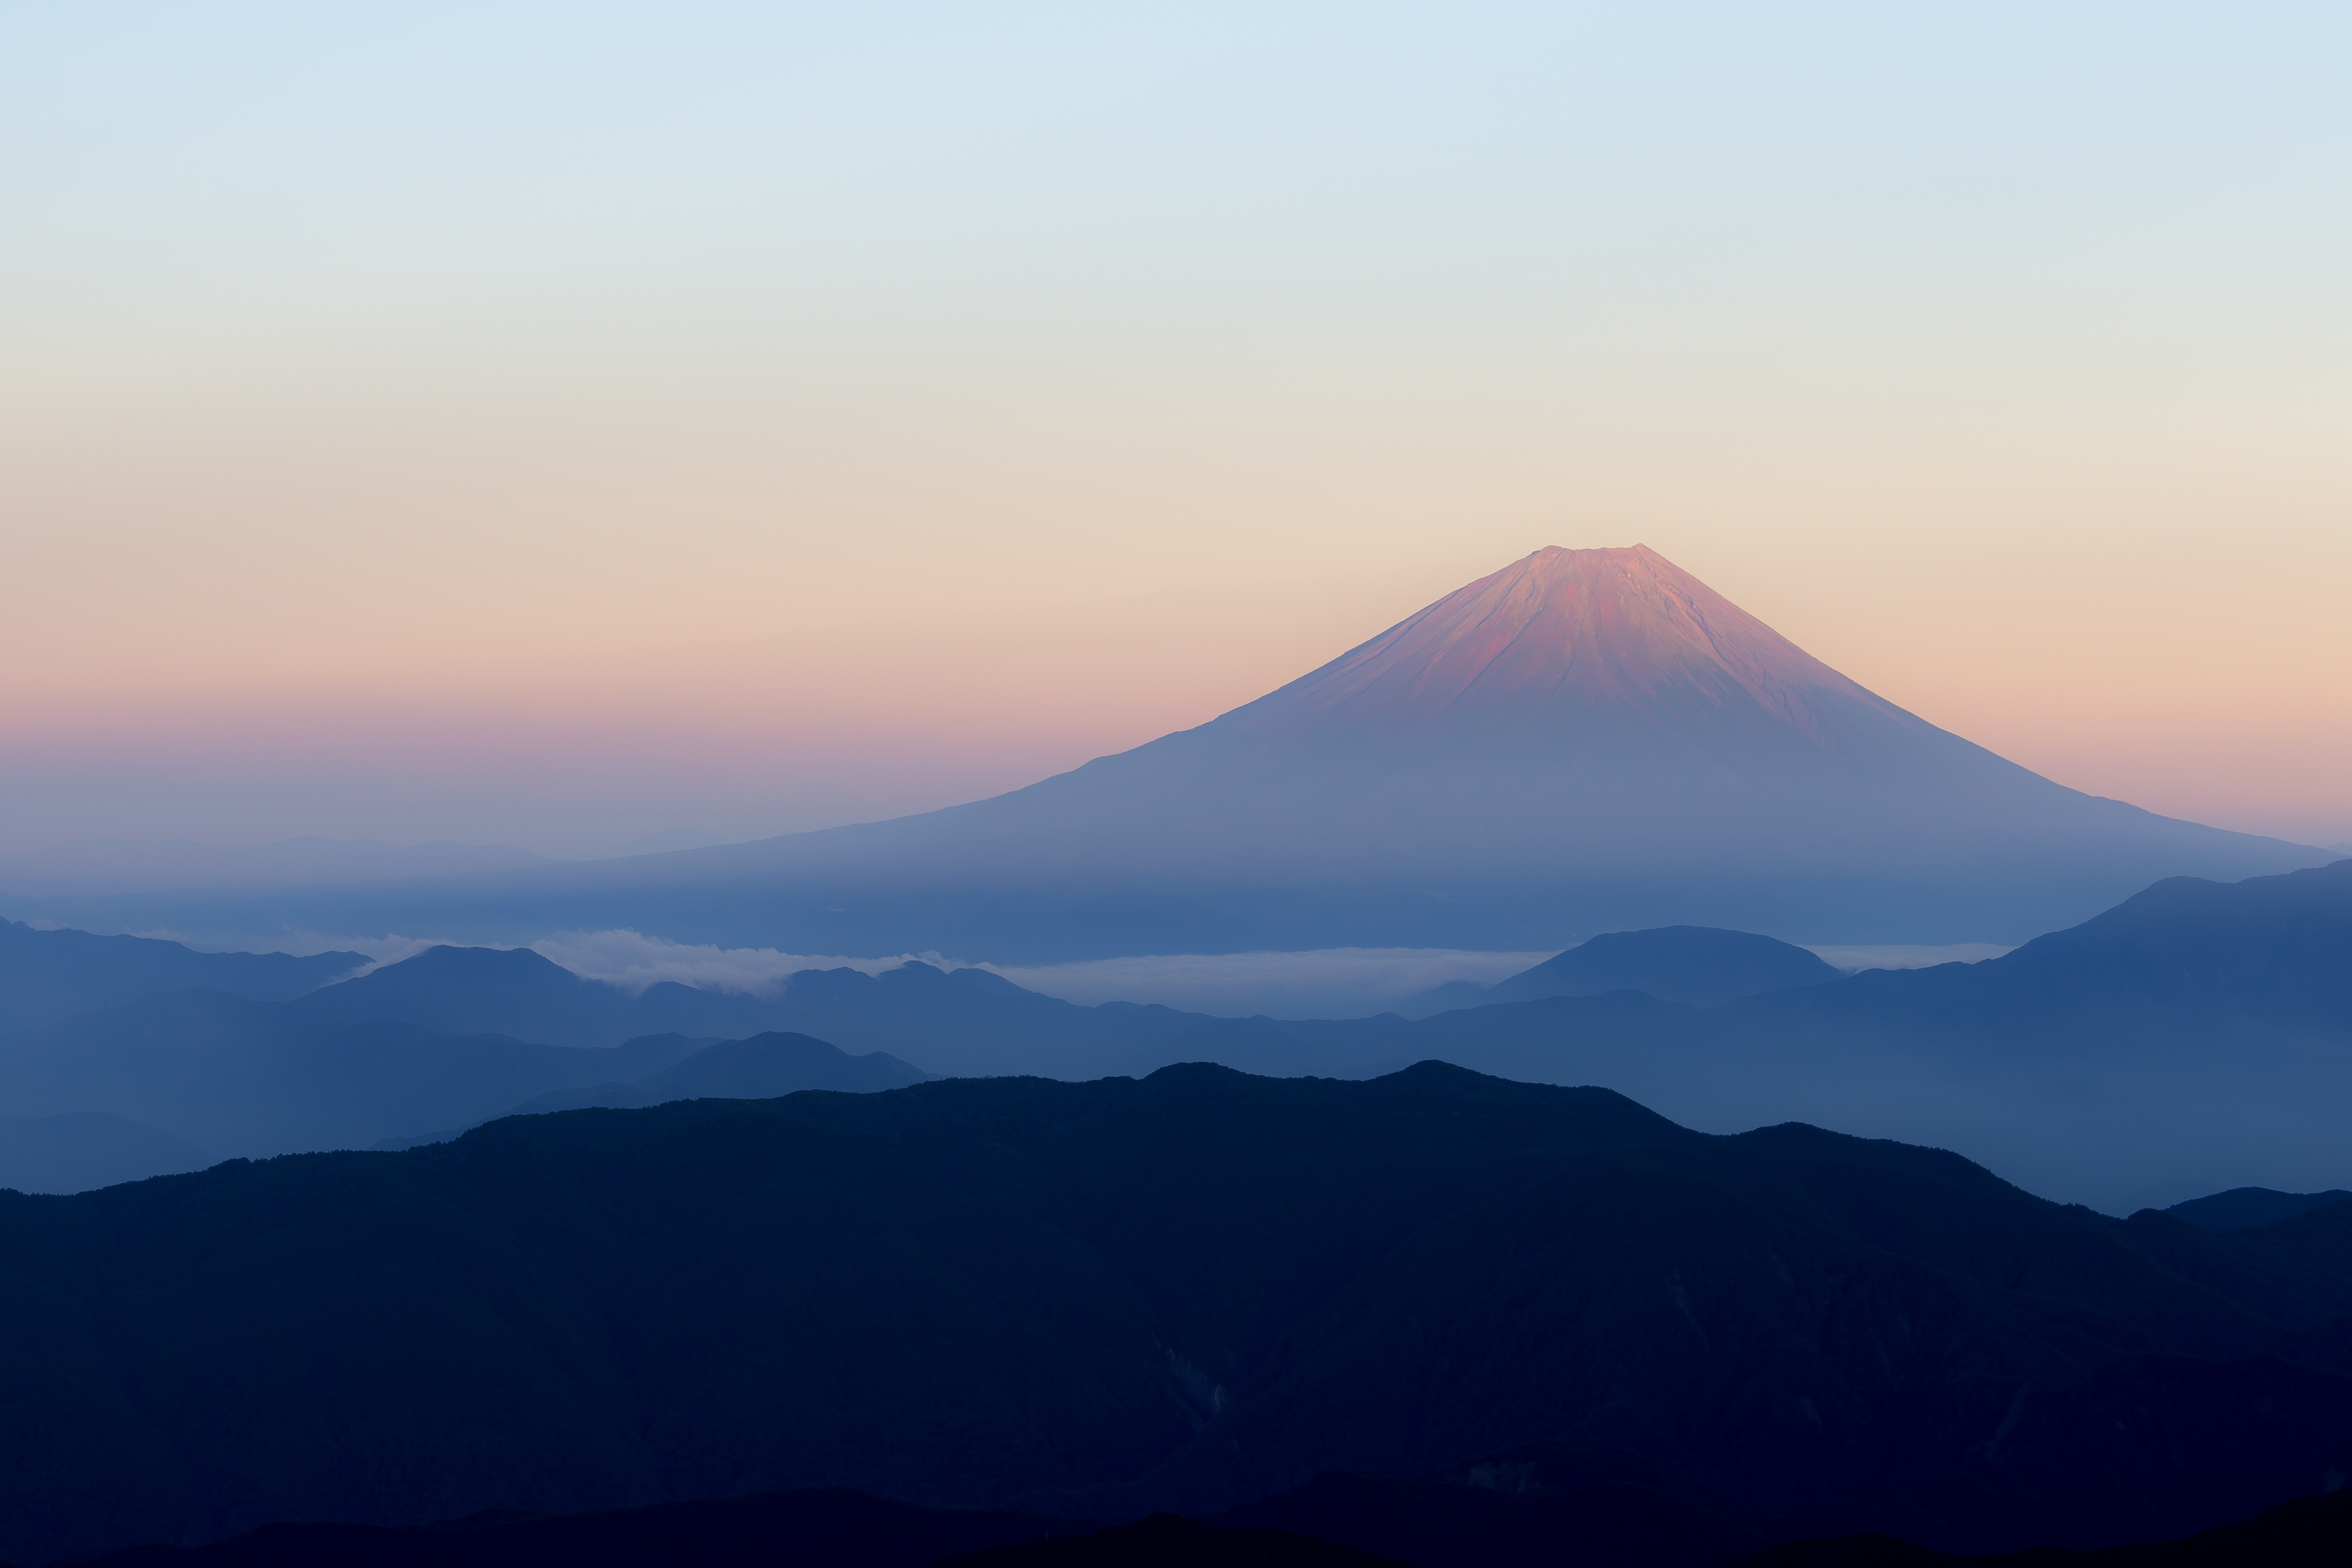 Mount Fuji 4k Ultra Hd Wallpaper Background Image